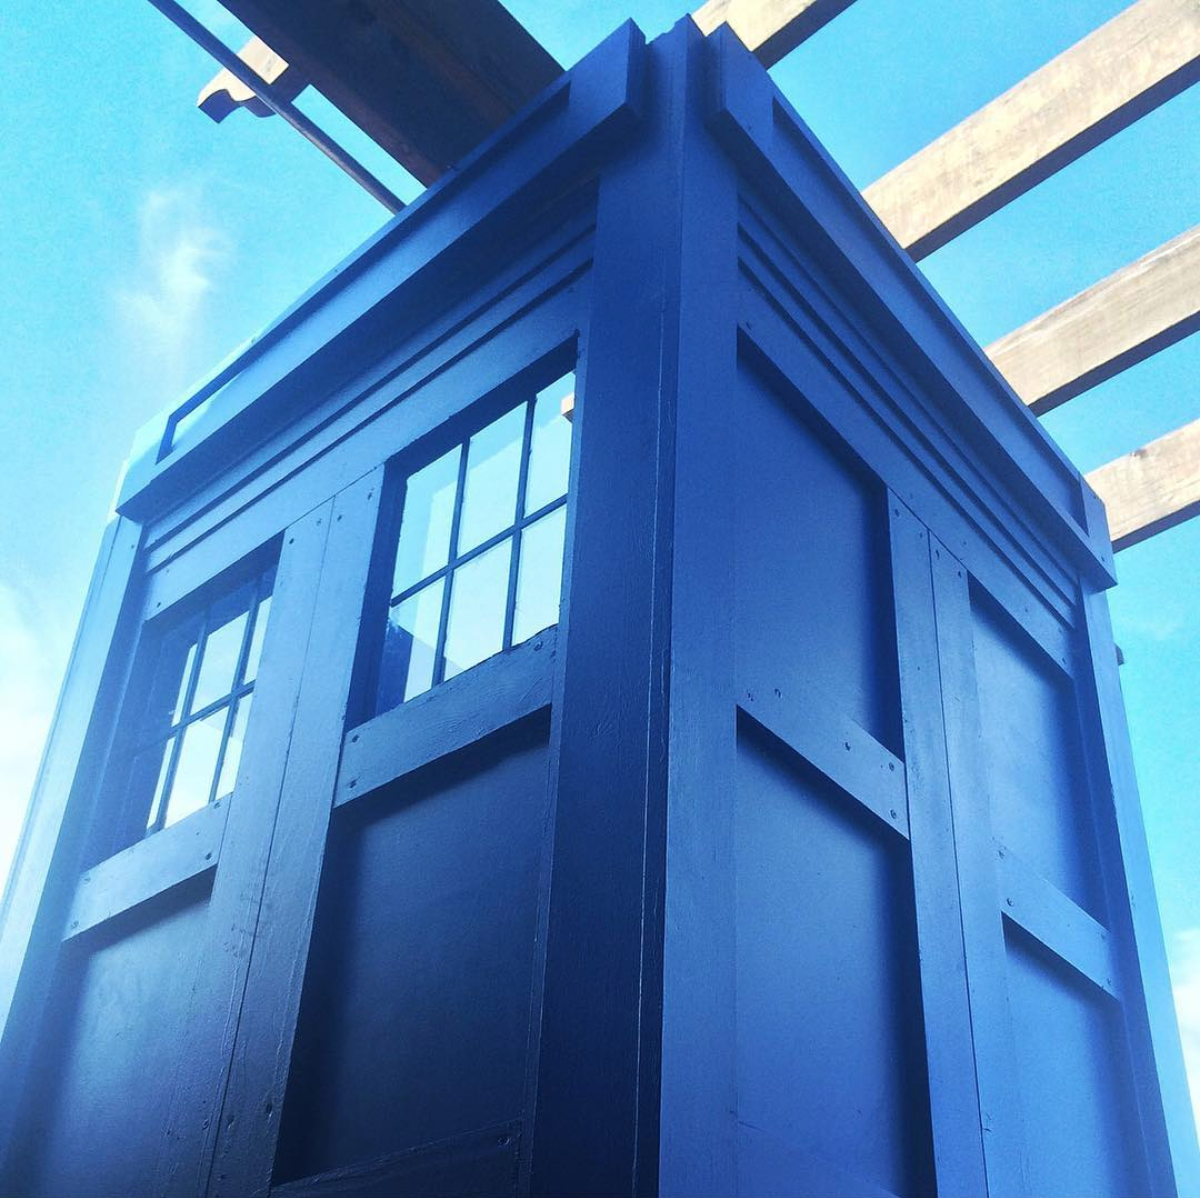 dr.who.png